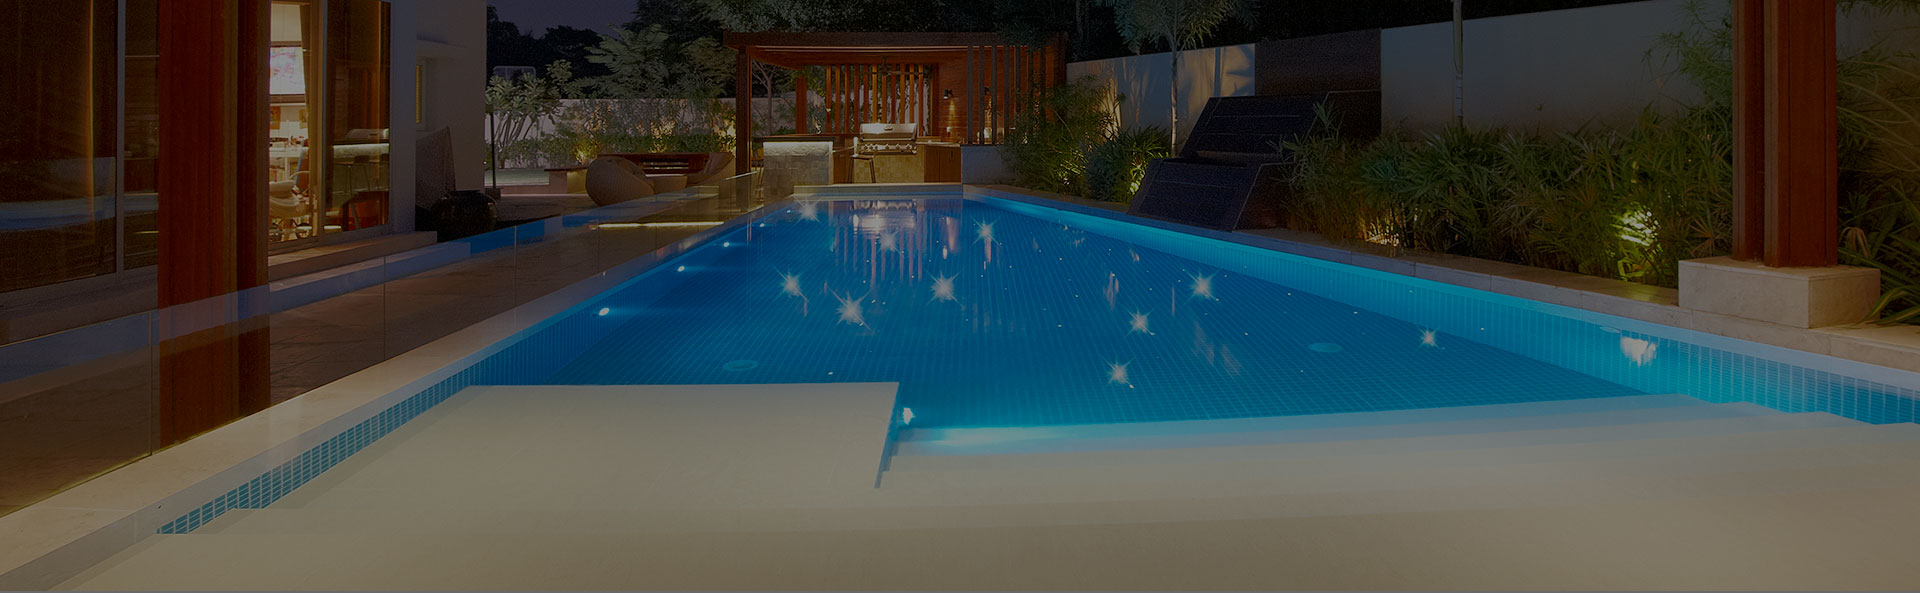 Landscaping And Swimming Pool Contractor Dubai